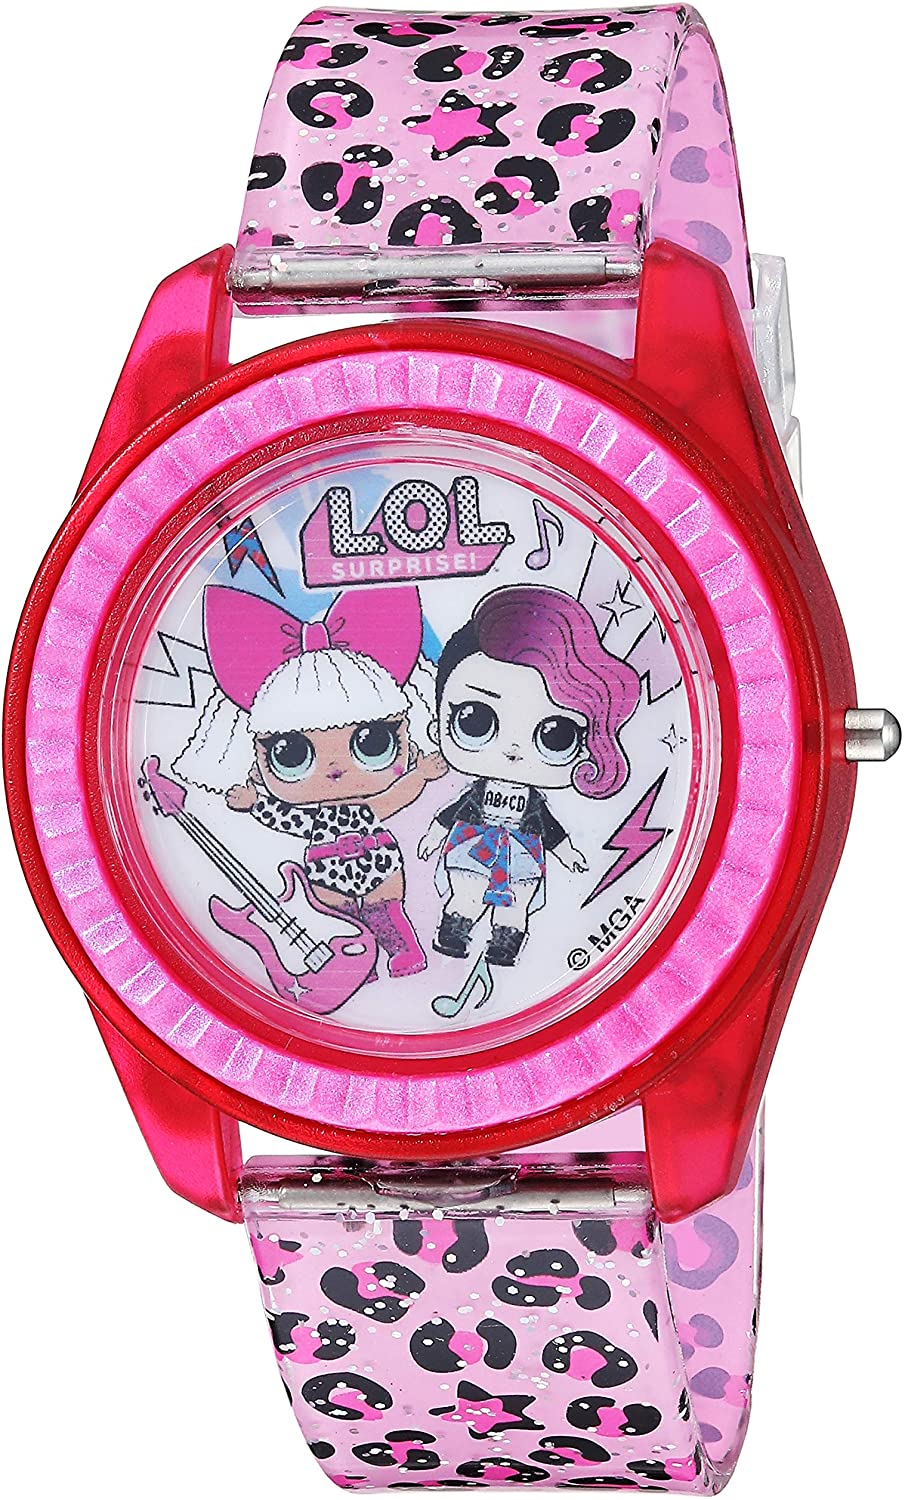 L.O.L. Surprise Girls' New Free Shipping Quartz Watch Max 73% OFF with Pink Strap 1 Plastic